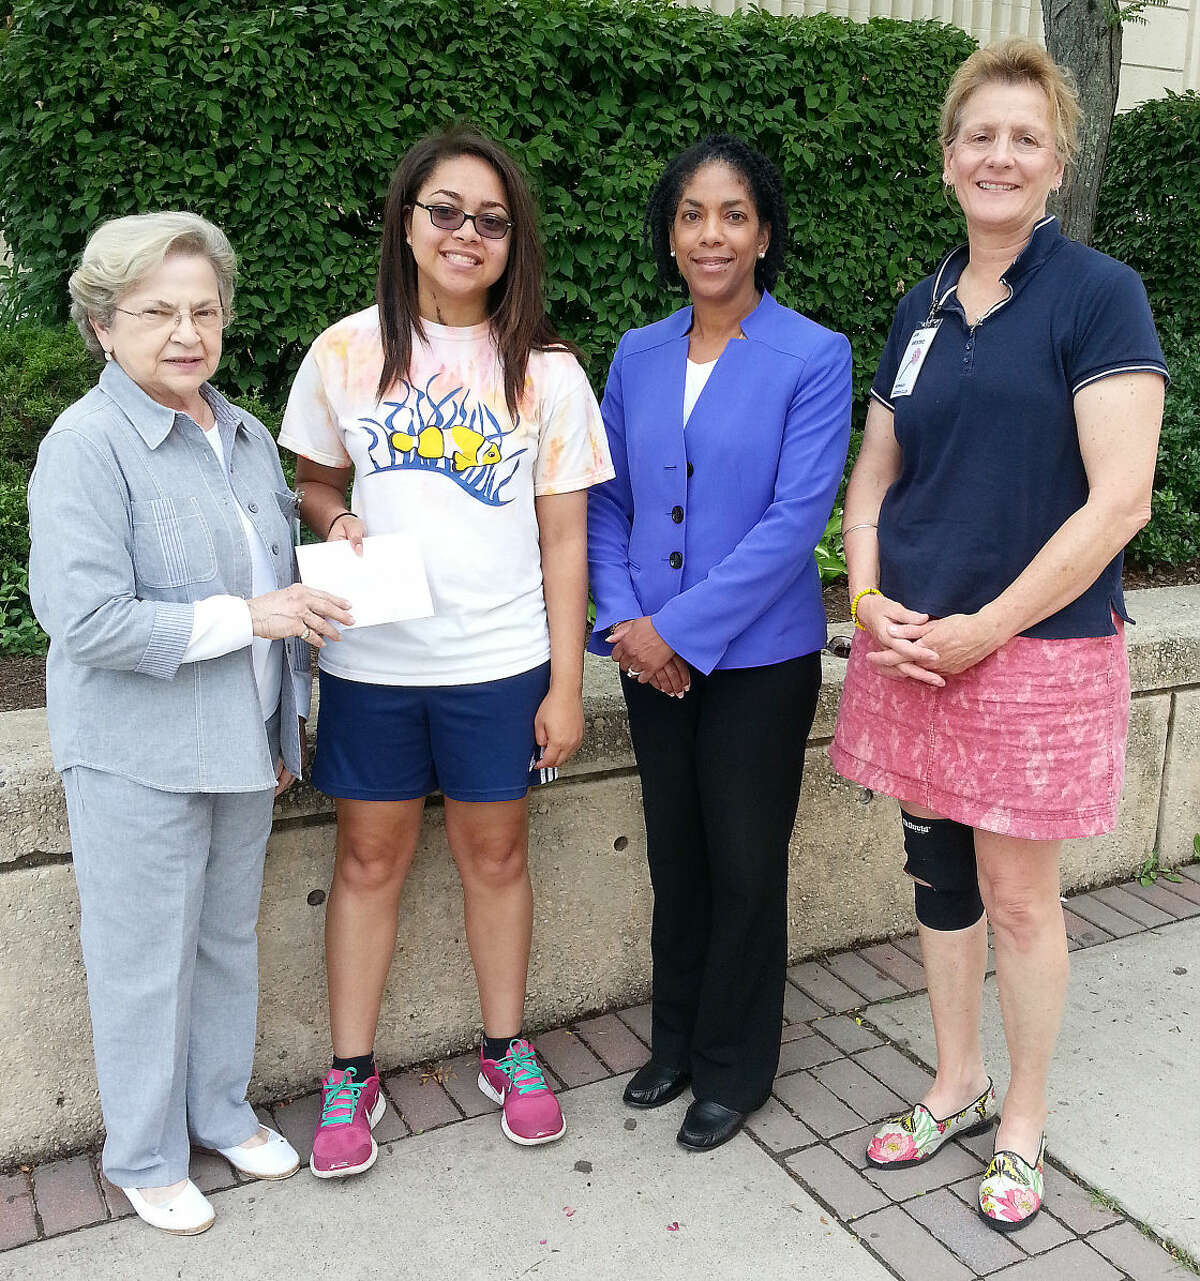 Contributed photo The Norwalk Garden Club presented a scholarship for $1,000 to Amanda Turner recently. Pictured from the left are: Janet Valus (Scholarship Committee); Amanda Turner; Mrs. Turner; and Jan Broome, President. Not pictured is Barbara Thompson (Scholarship Committee).